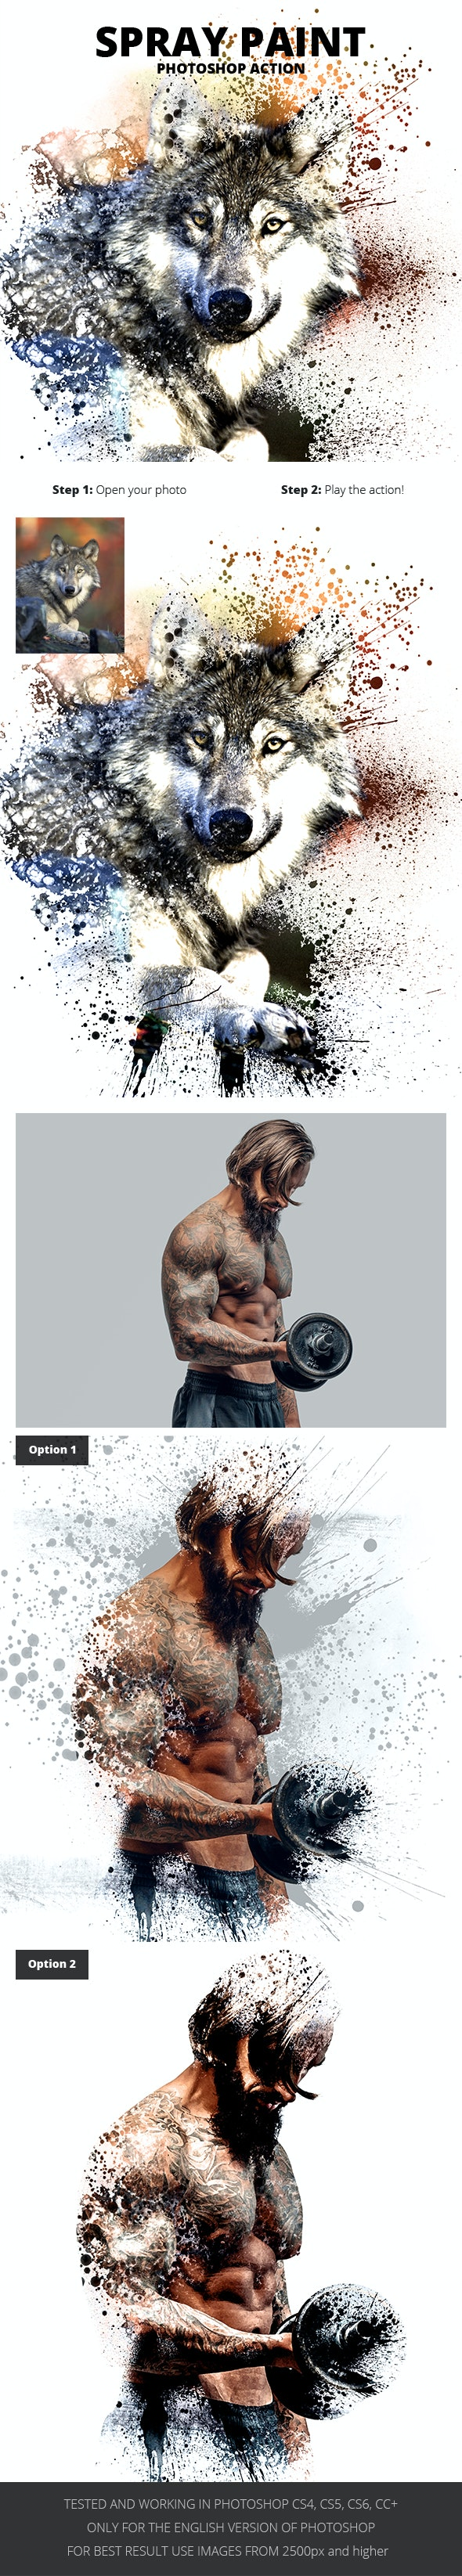 Spray Paint Photoshop Action - Photo Effects Actions